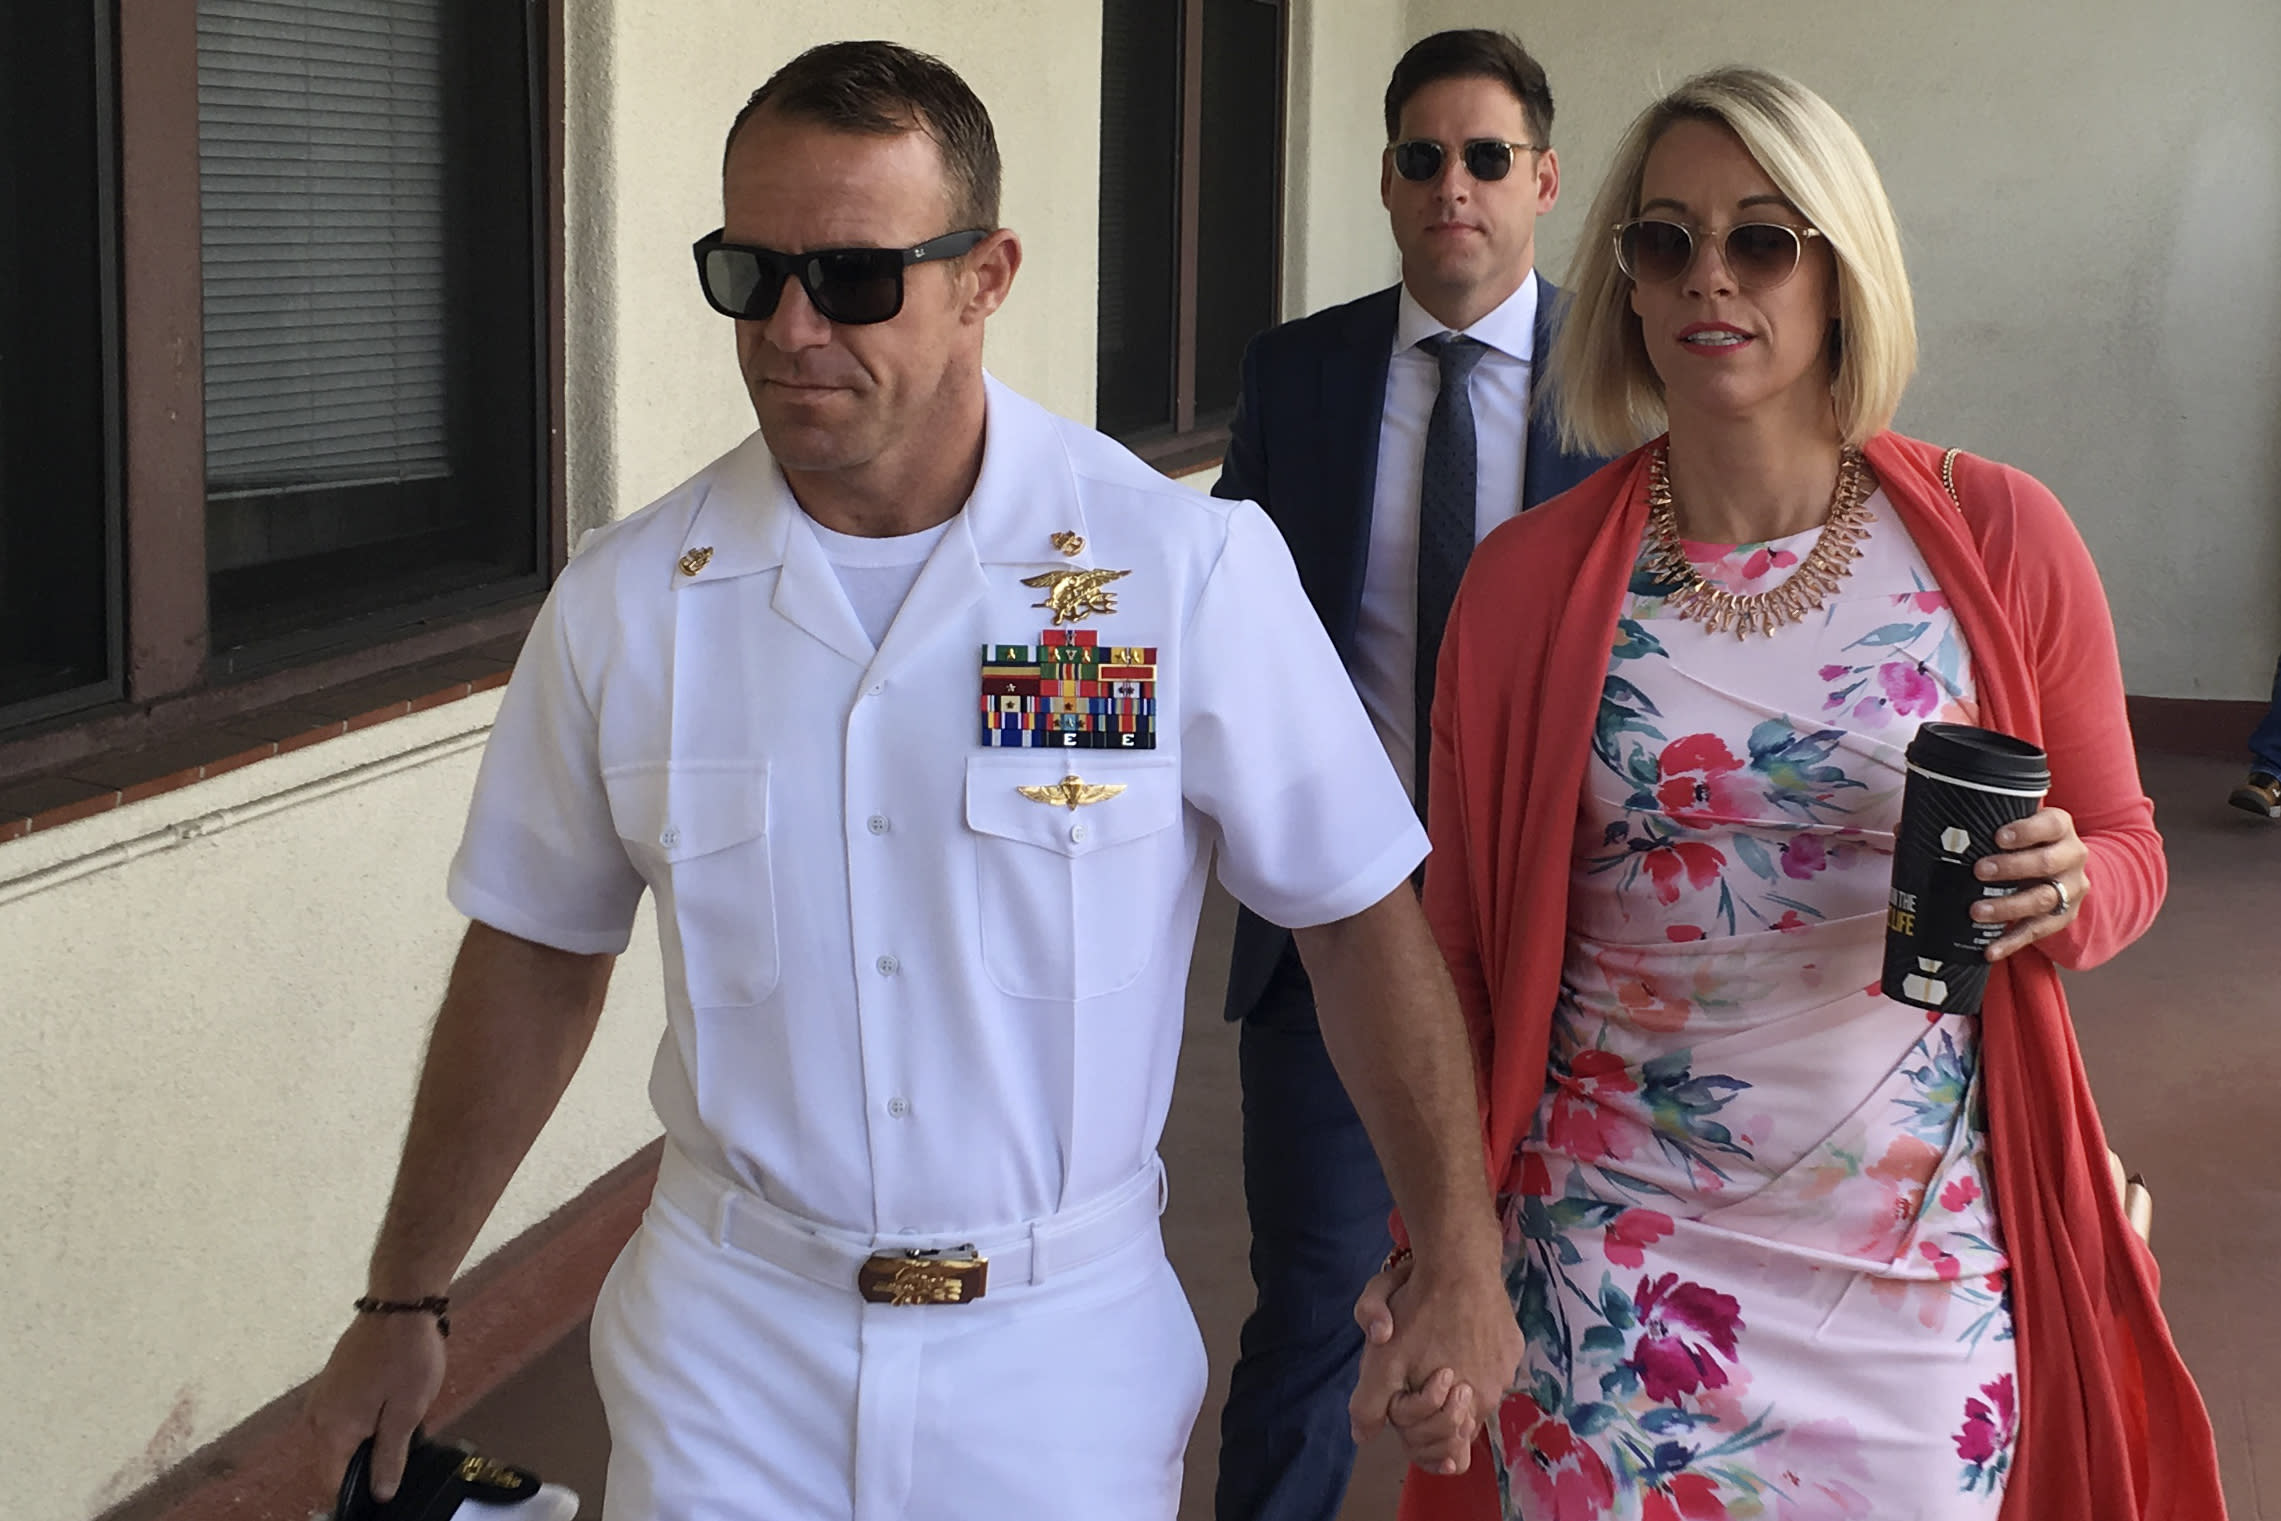 Lawyers make closing arguments in U.S. Navy SEAL's war crimes trial